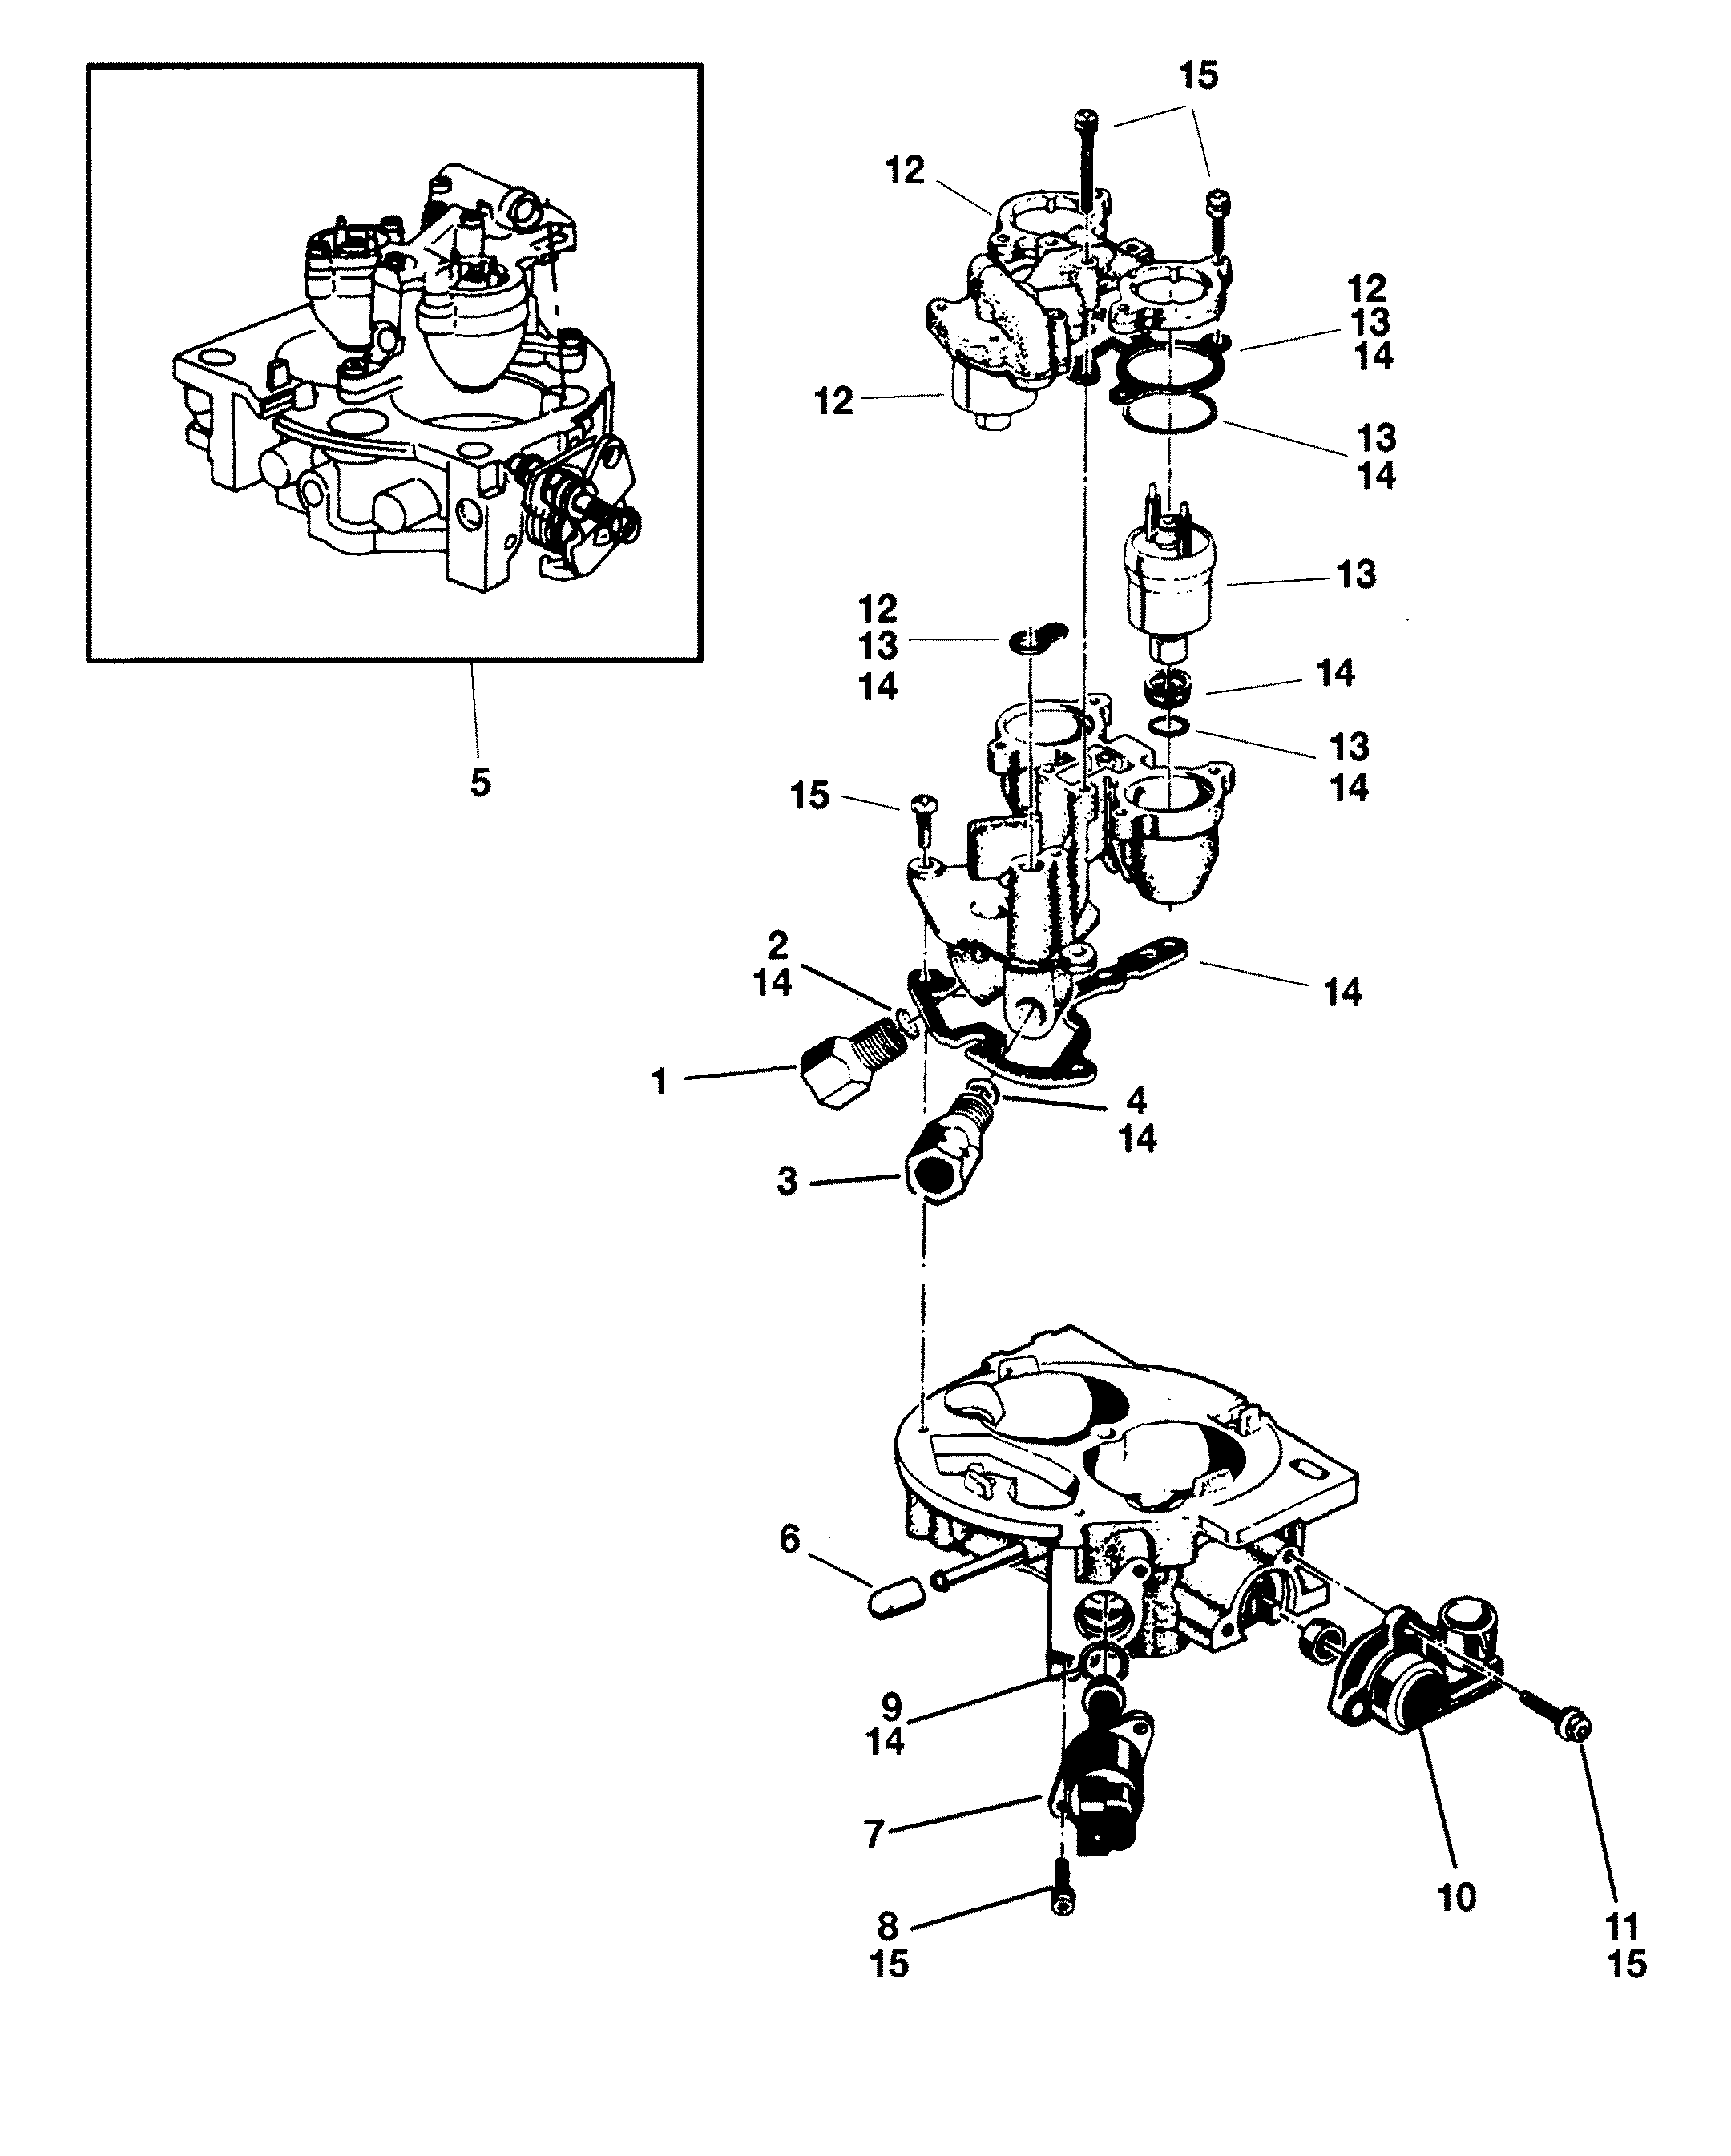 Cross fire injection 19821984 moreover Fuel Pump Wiring Diagram 1 in addition 1986 Chevy Blazer Engine Diagram Html in addition 22 in addition Vacuum Diagram 1979 Firebird. on chevy tbi fuel lines